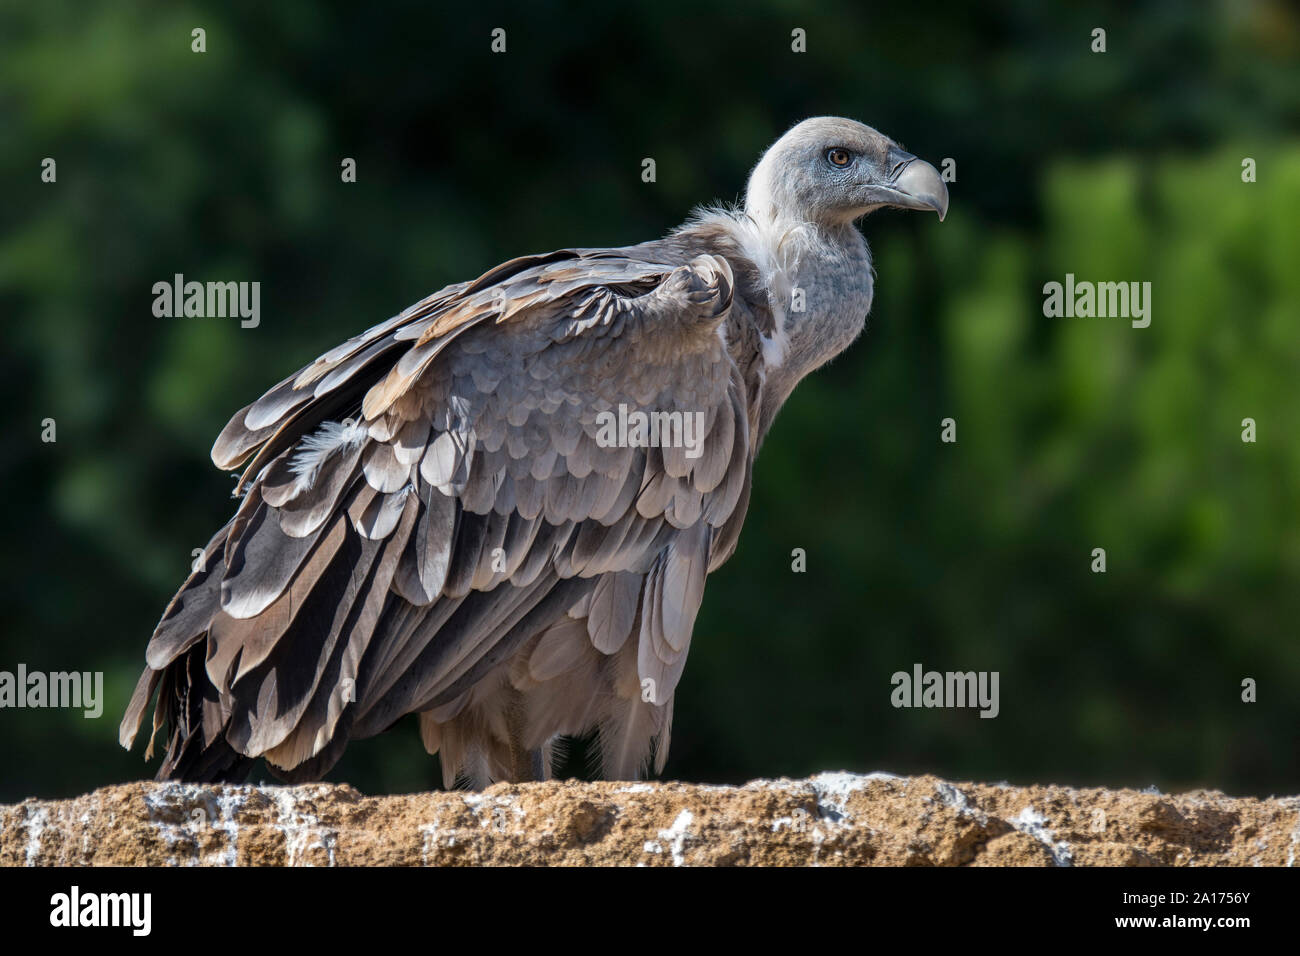 Griffon vulture (Gyps fulvus) perched on rock, native to France and Spain in Europe Stock Photo